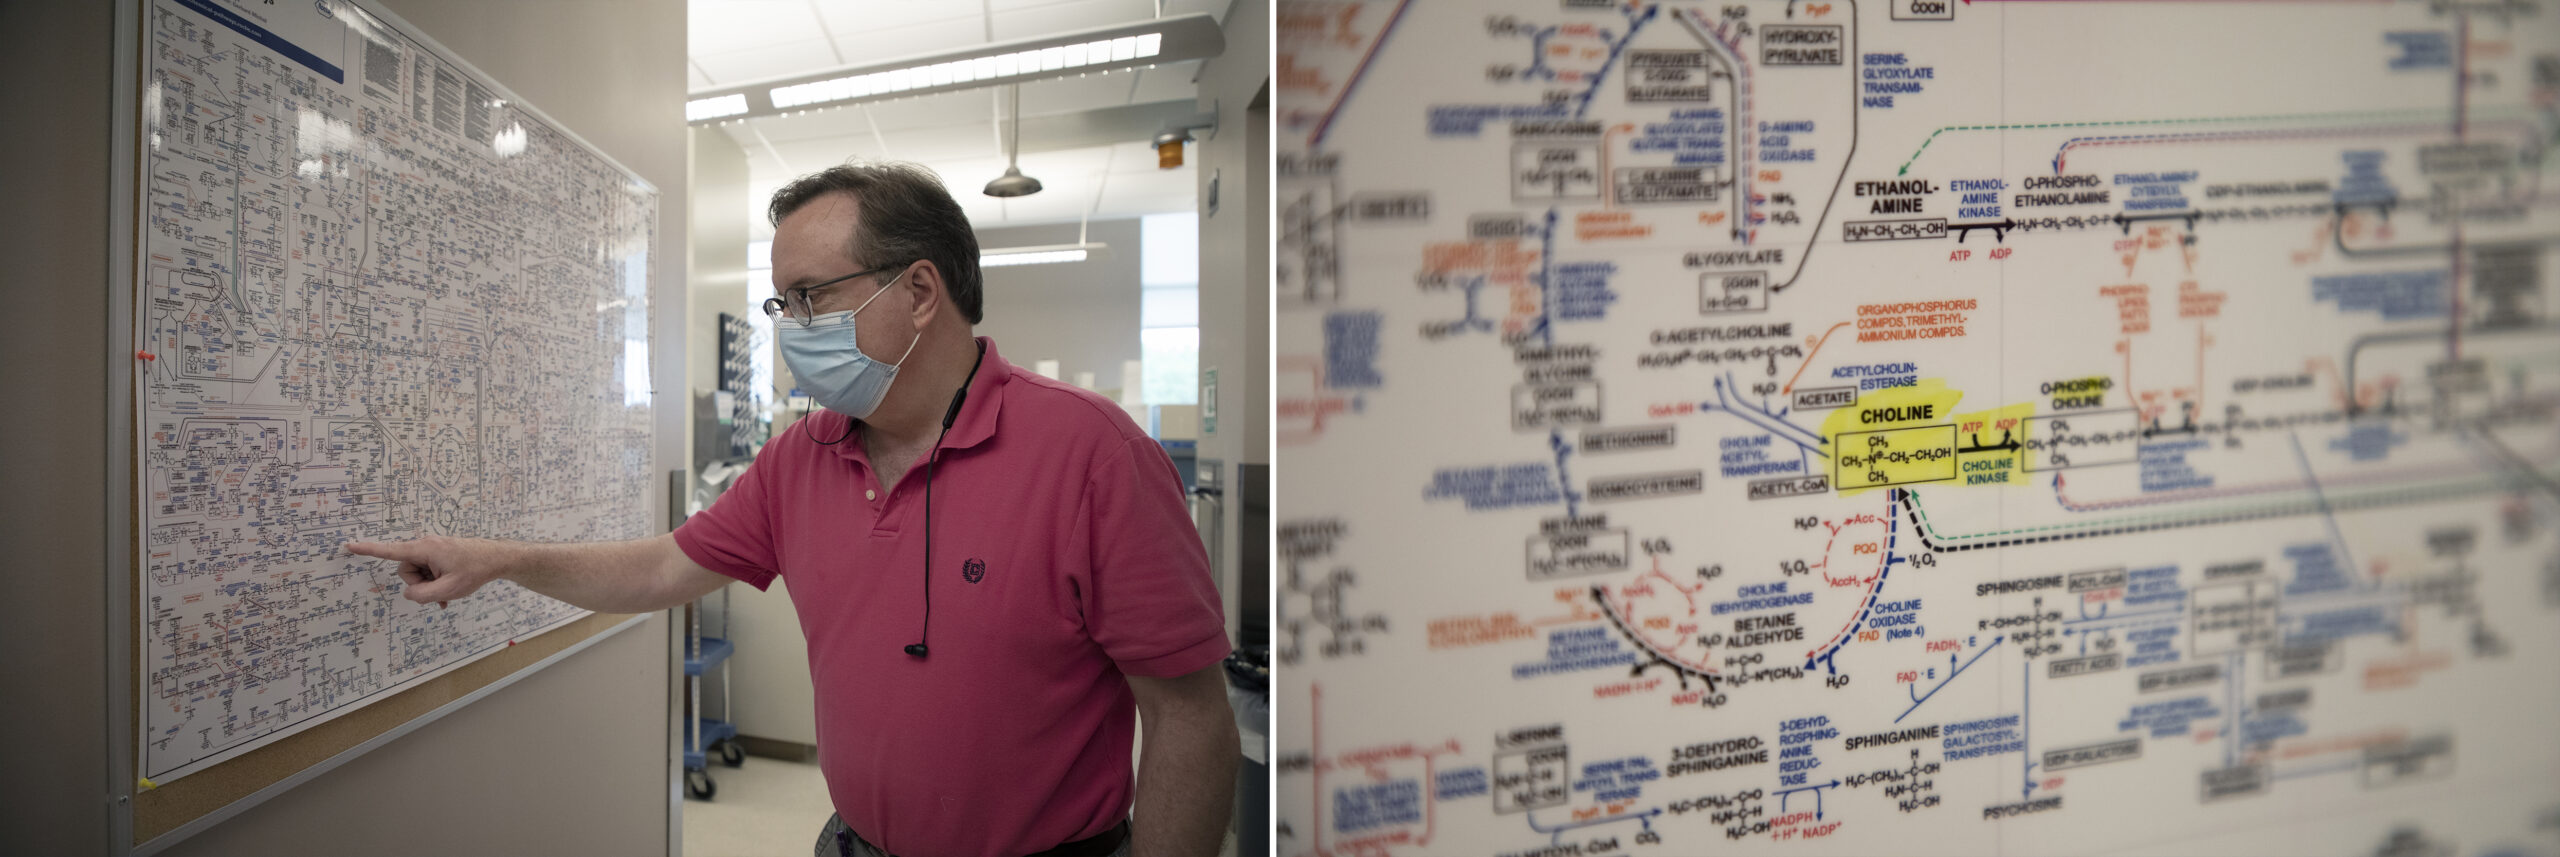 """Walter Friday points to """"choline"""" on a metabolic pathways poster; a close-up of choline on the poster"""